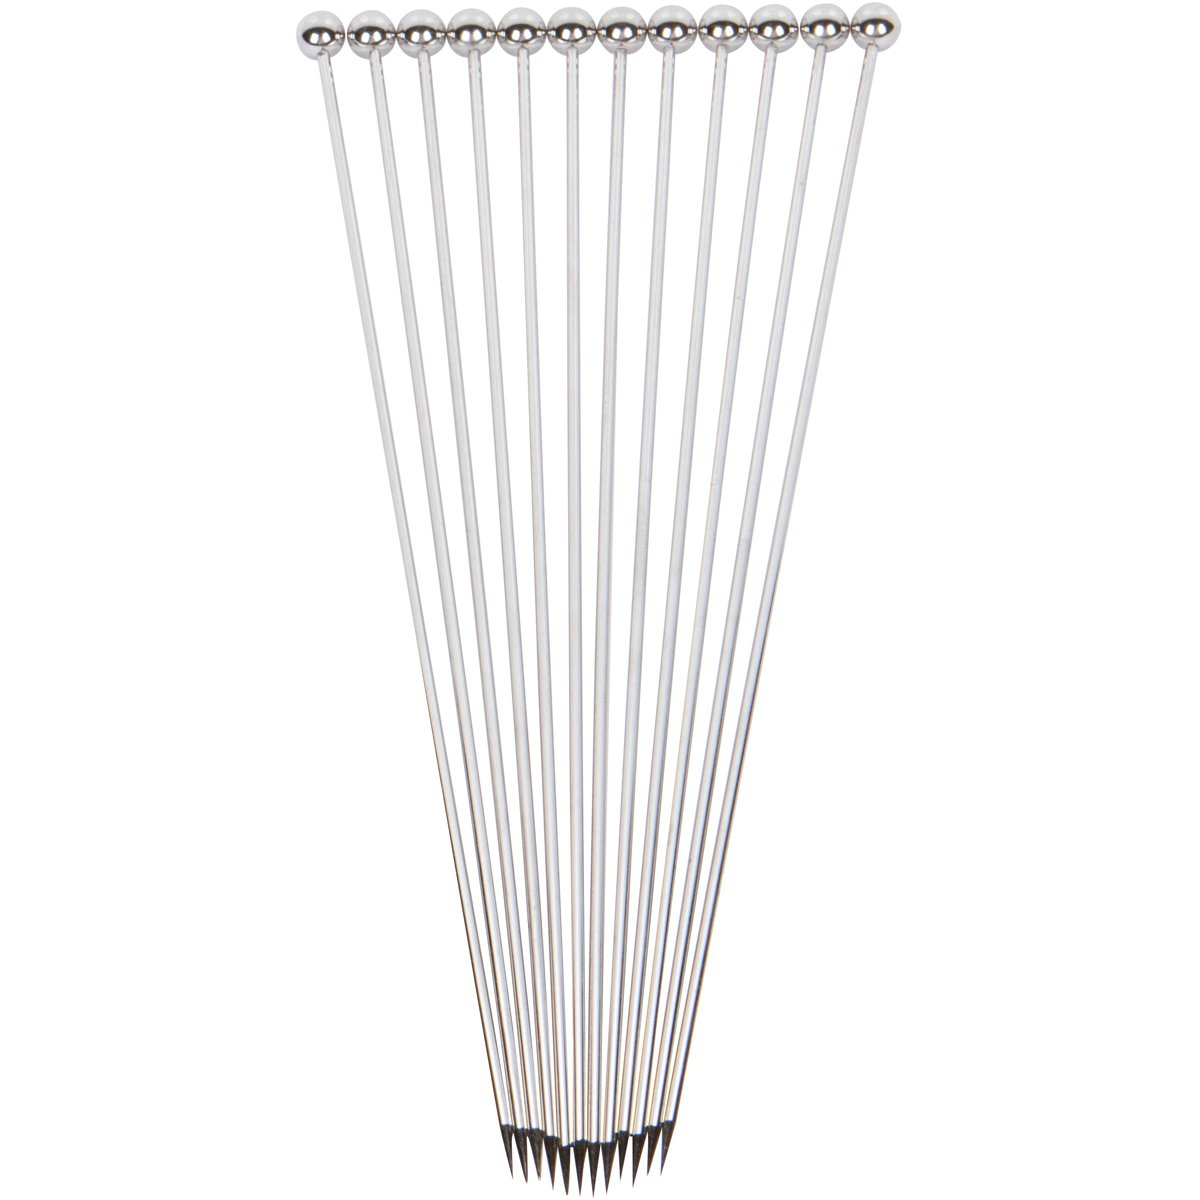 Stainless Steel Cocktail Picks - Extra long 8'' (Set of 12) by Top Shelf Bar Supply (Image #4)